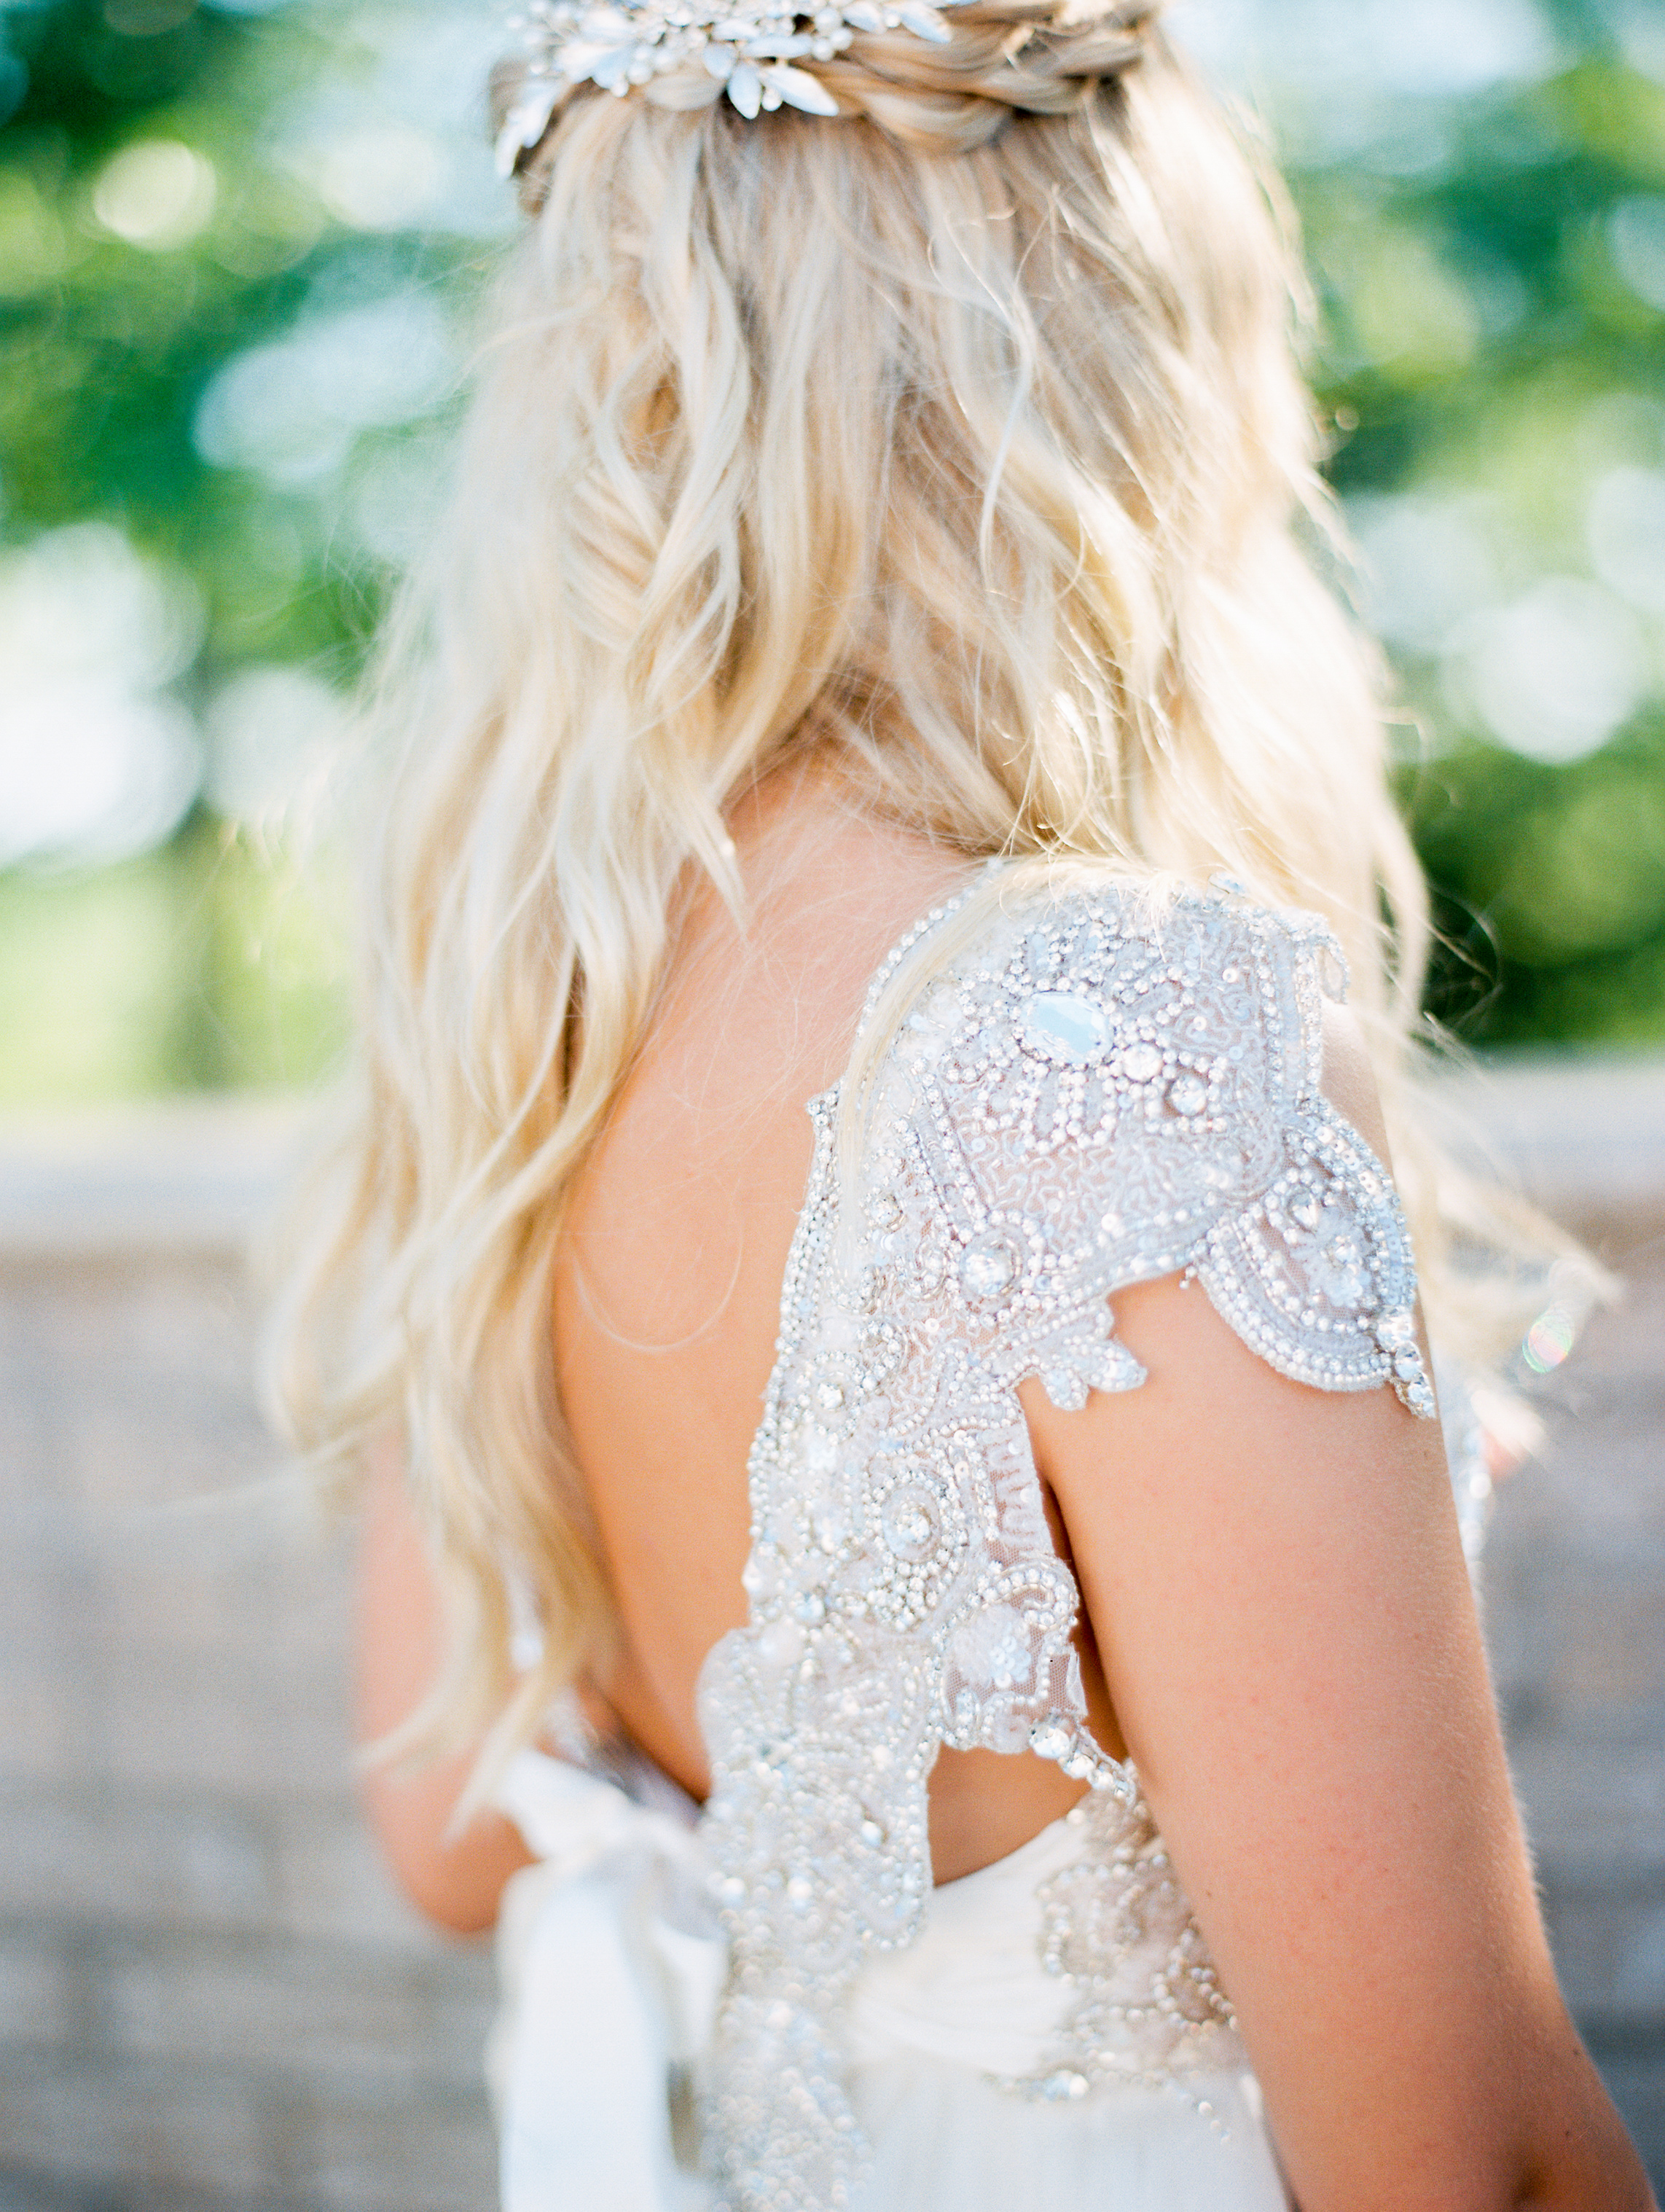 A Bride with a Wedding Dress That Has Jeweled Back Details